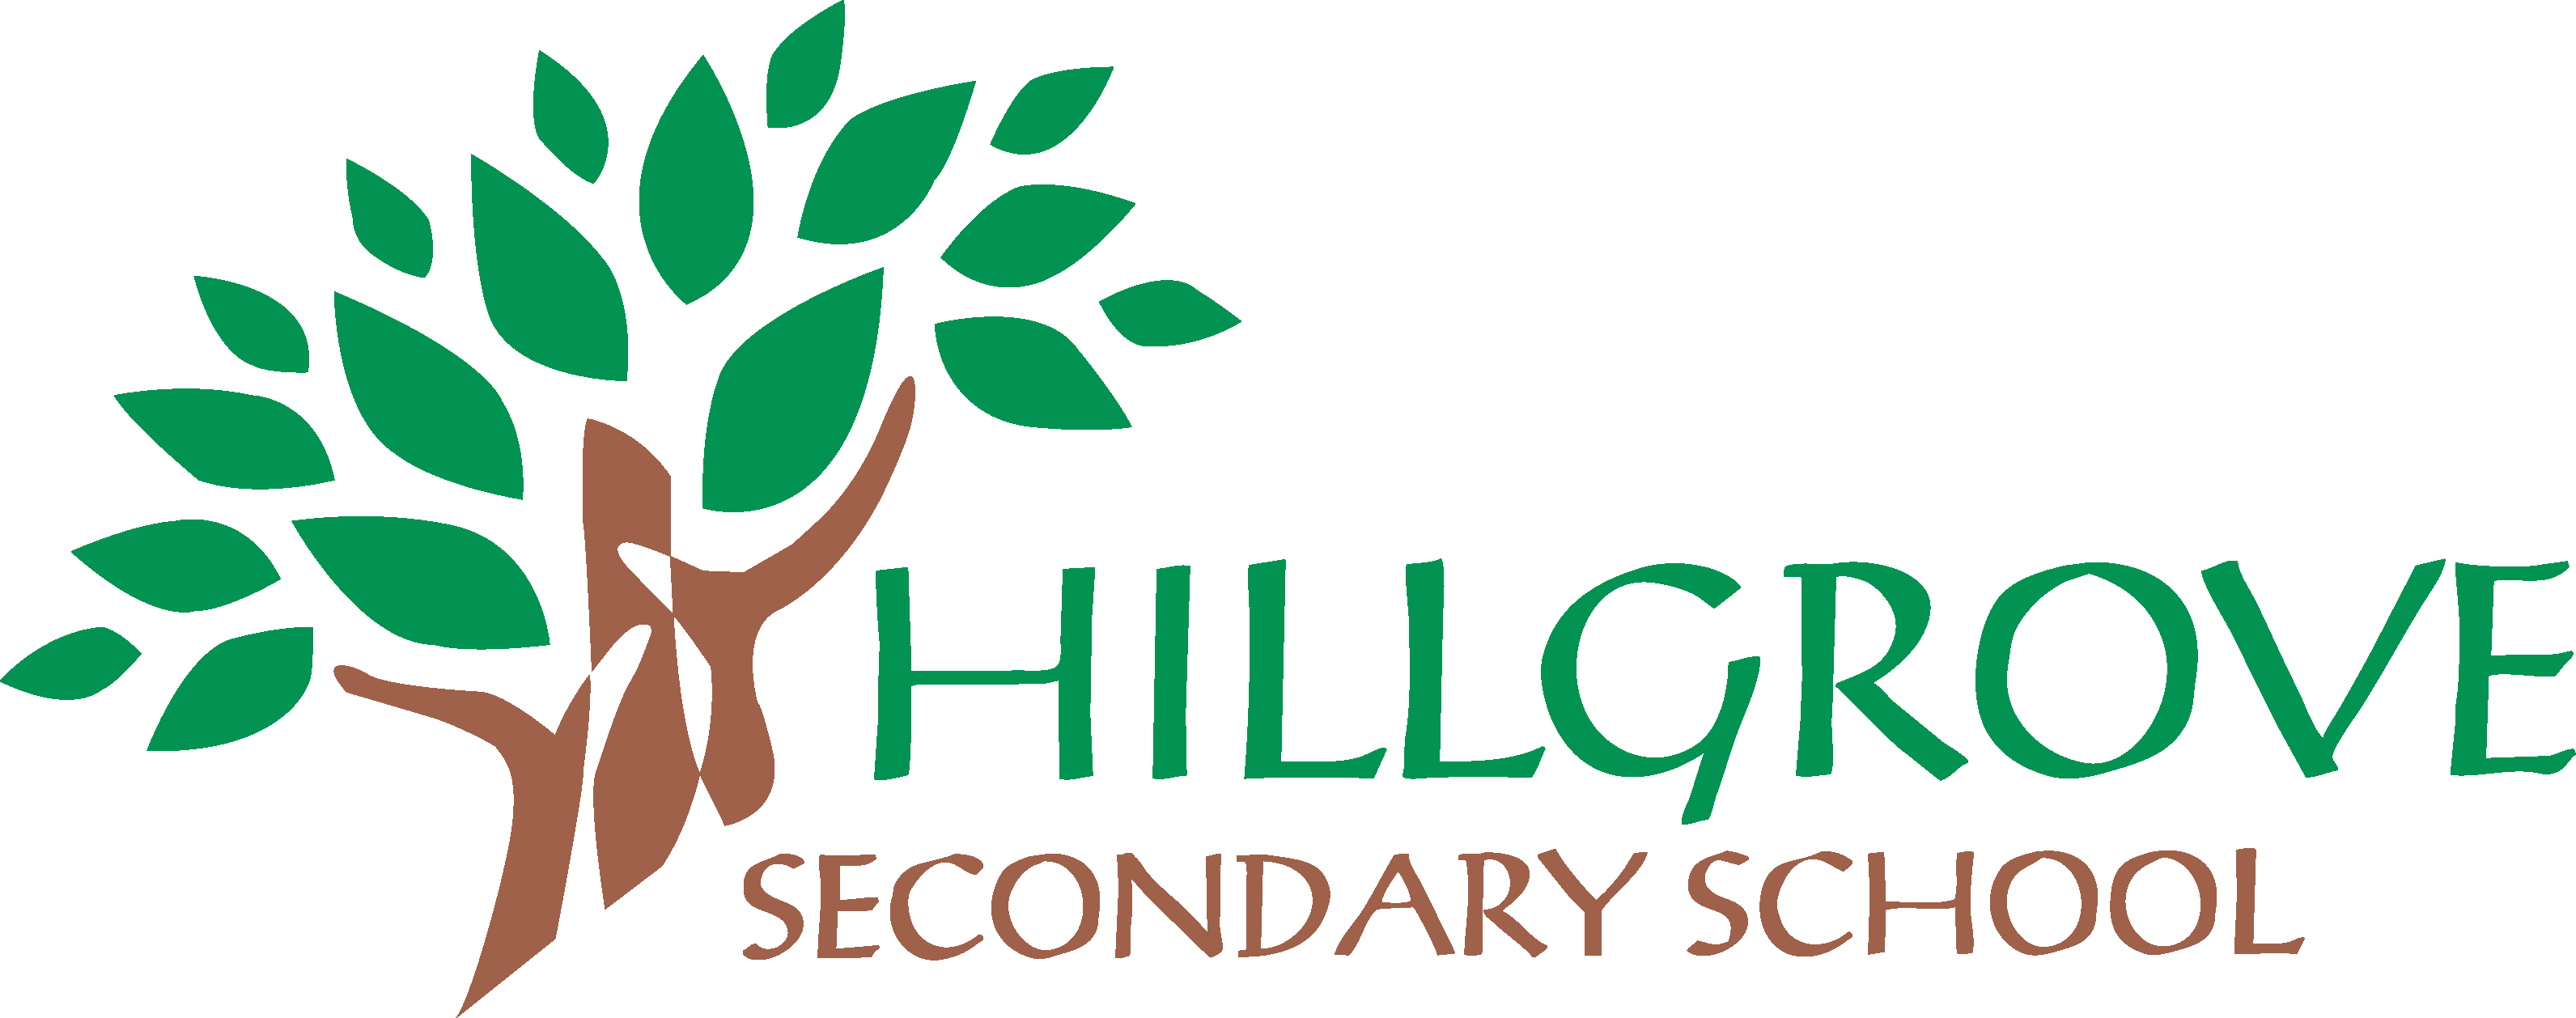 HillgroveSecLogo.png